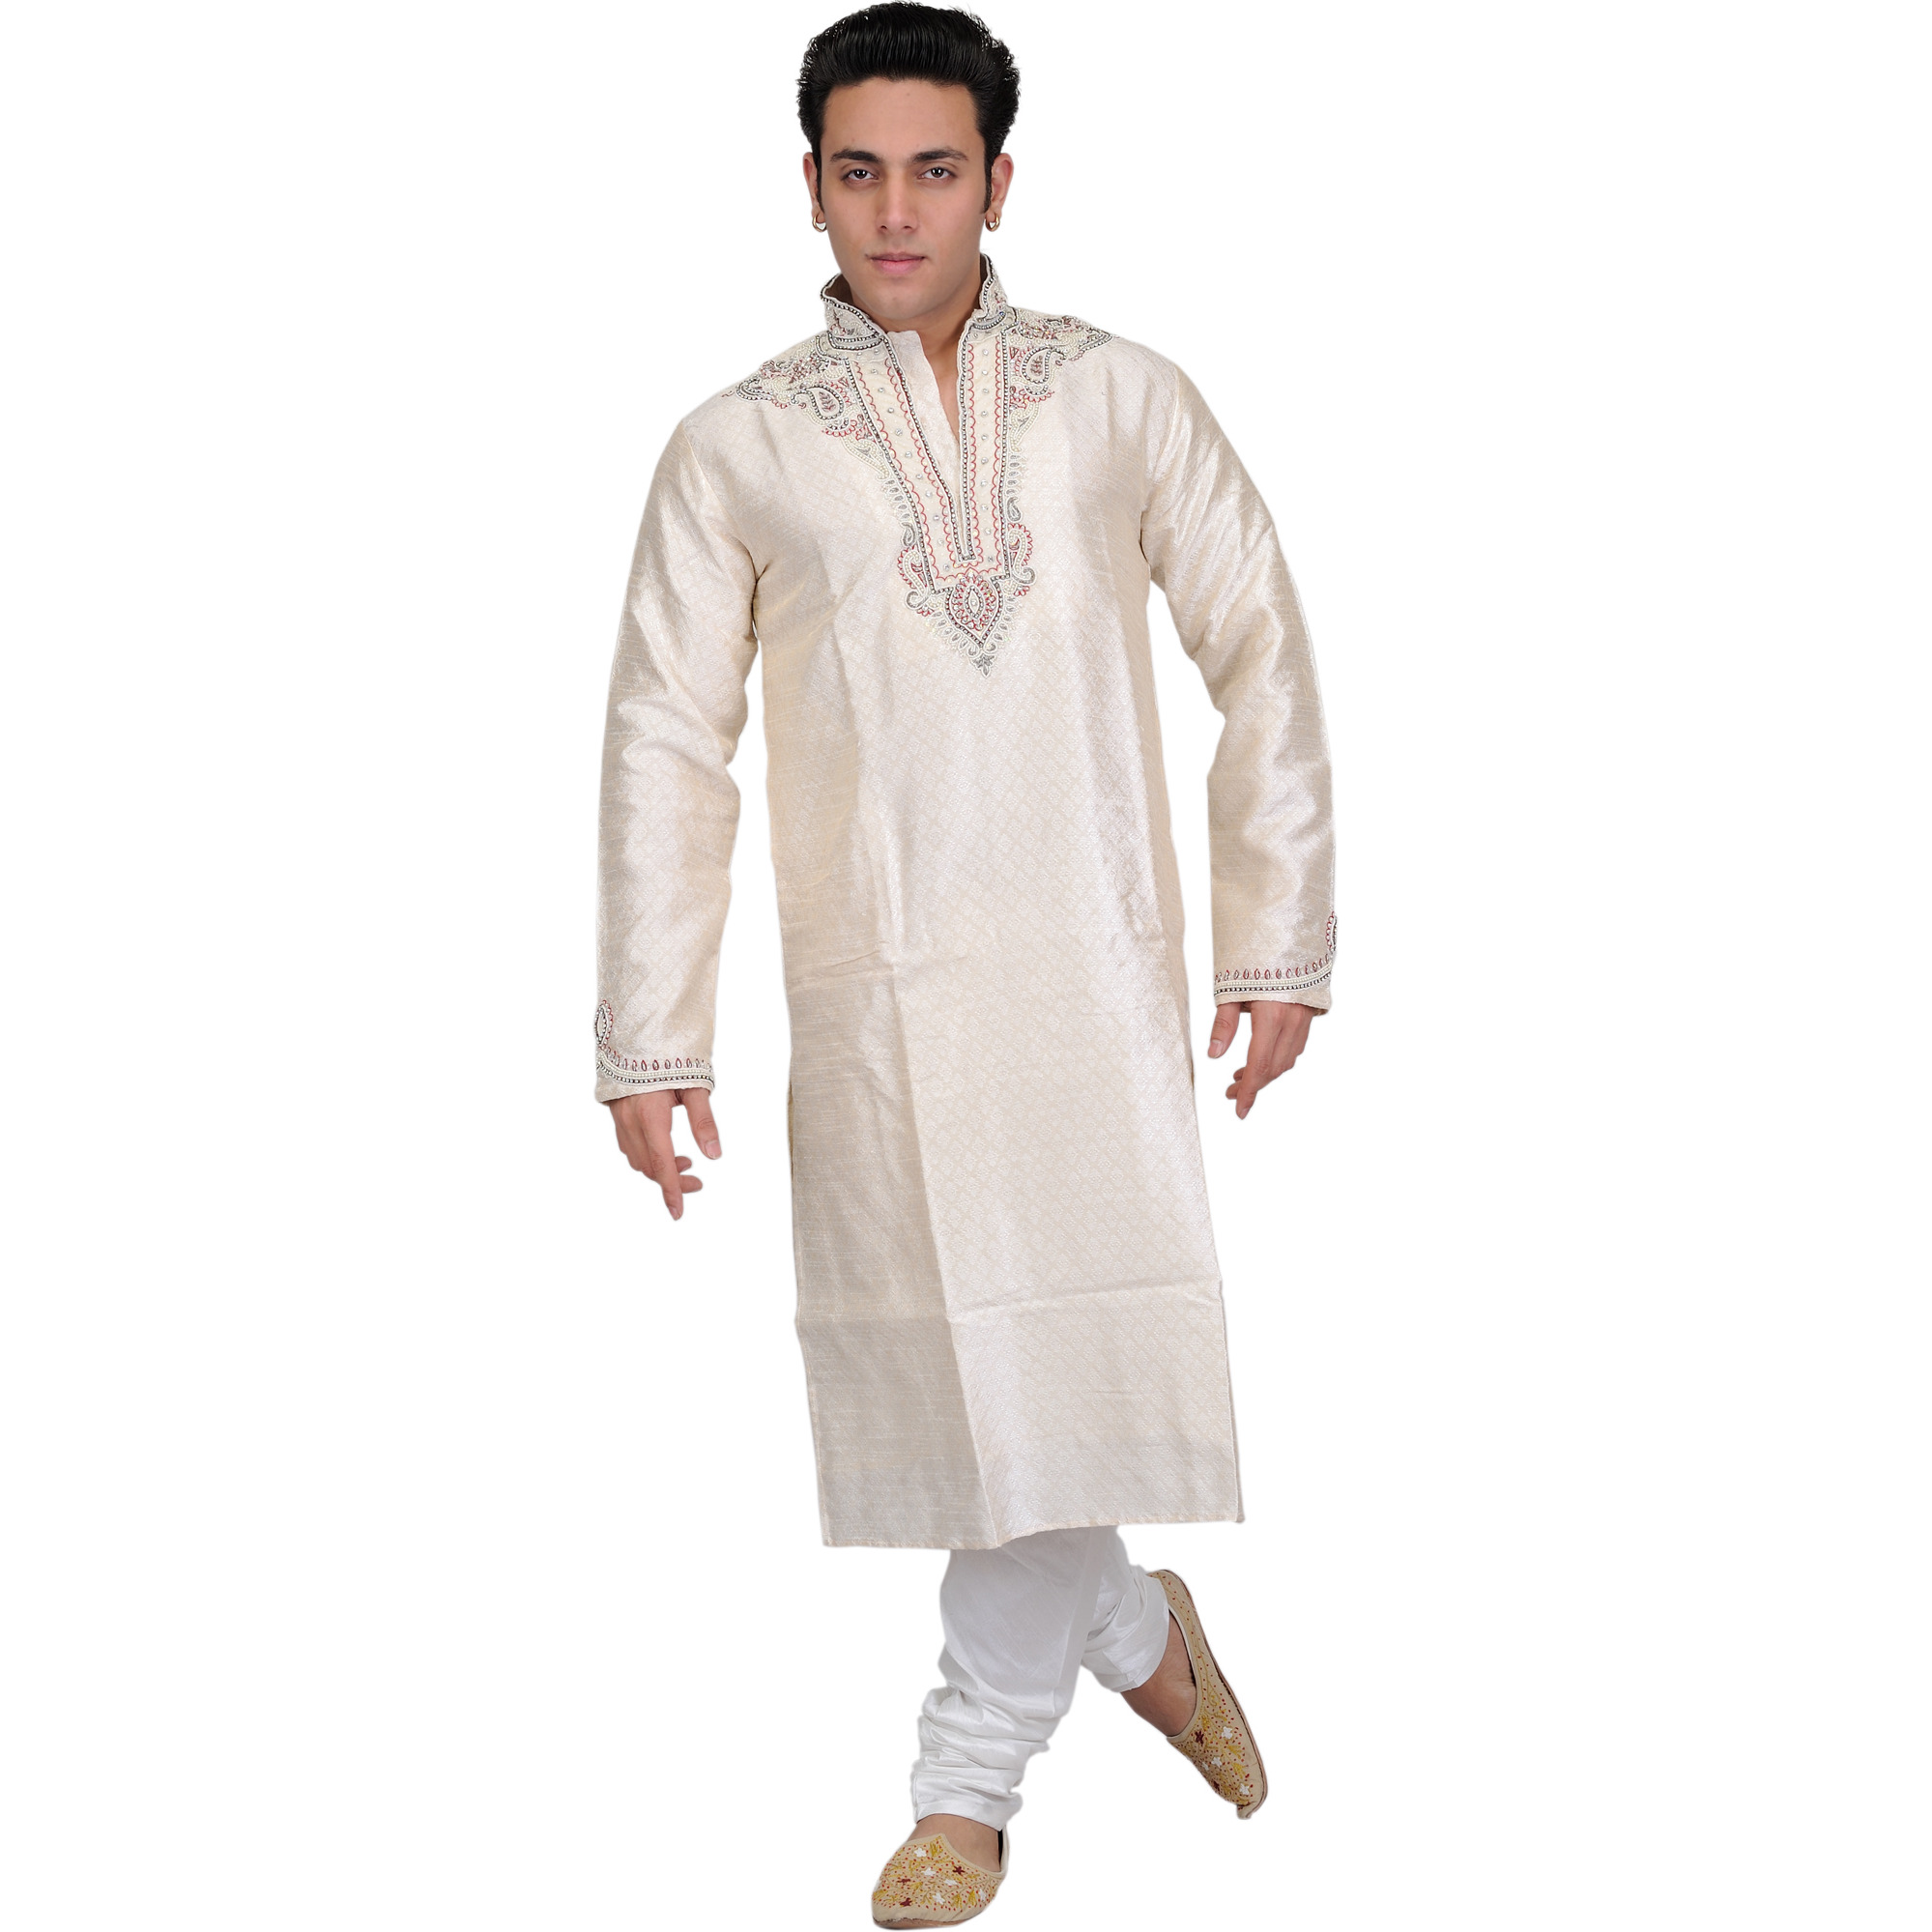 Ivory Self-Weave Wedding Kurta Pajama Set with Hand-Embroidered Beads on Neck